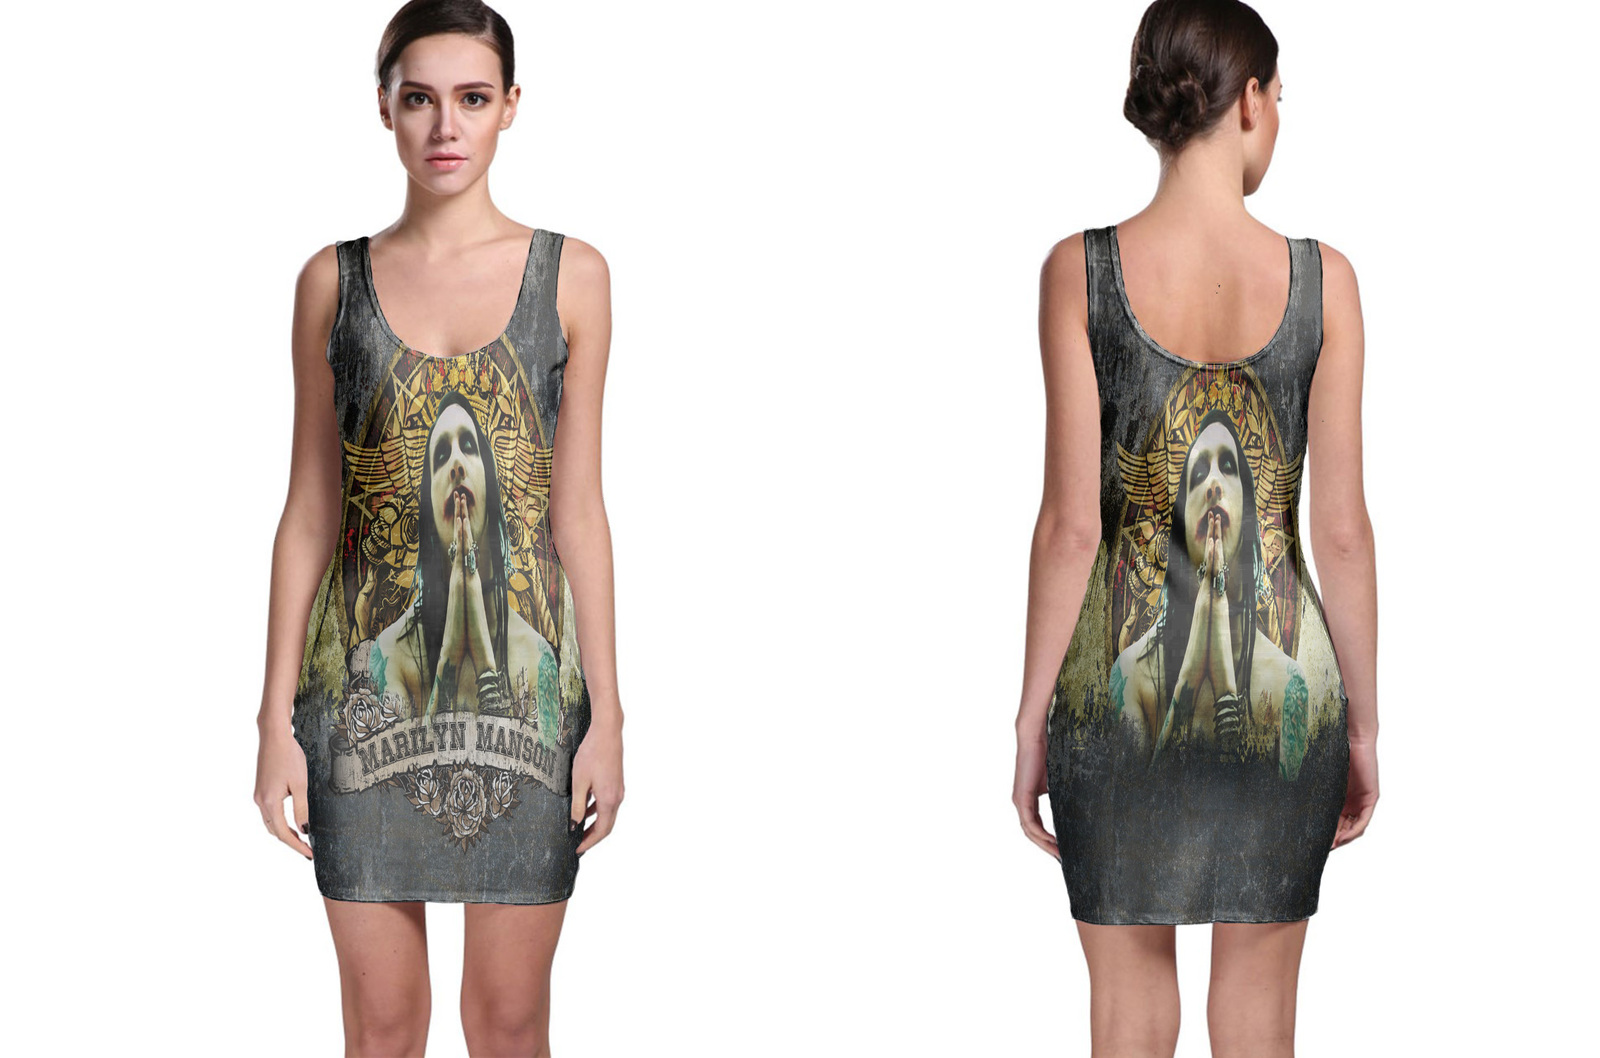 Primary image for Rare New Marilyn Manson The Last Song Bodycon Dress